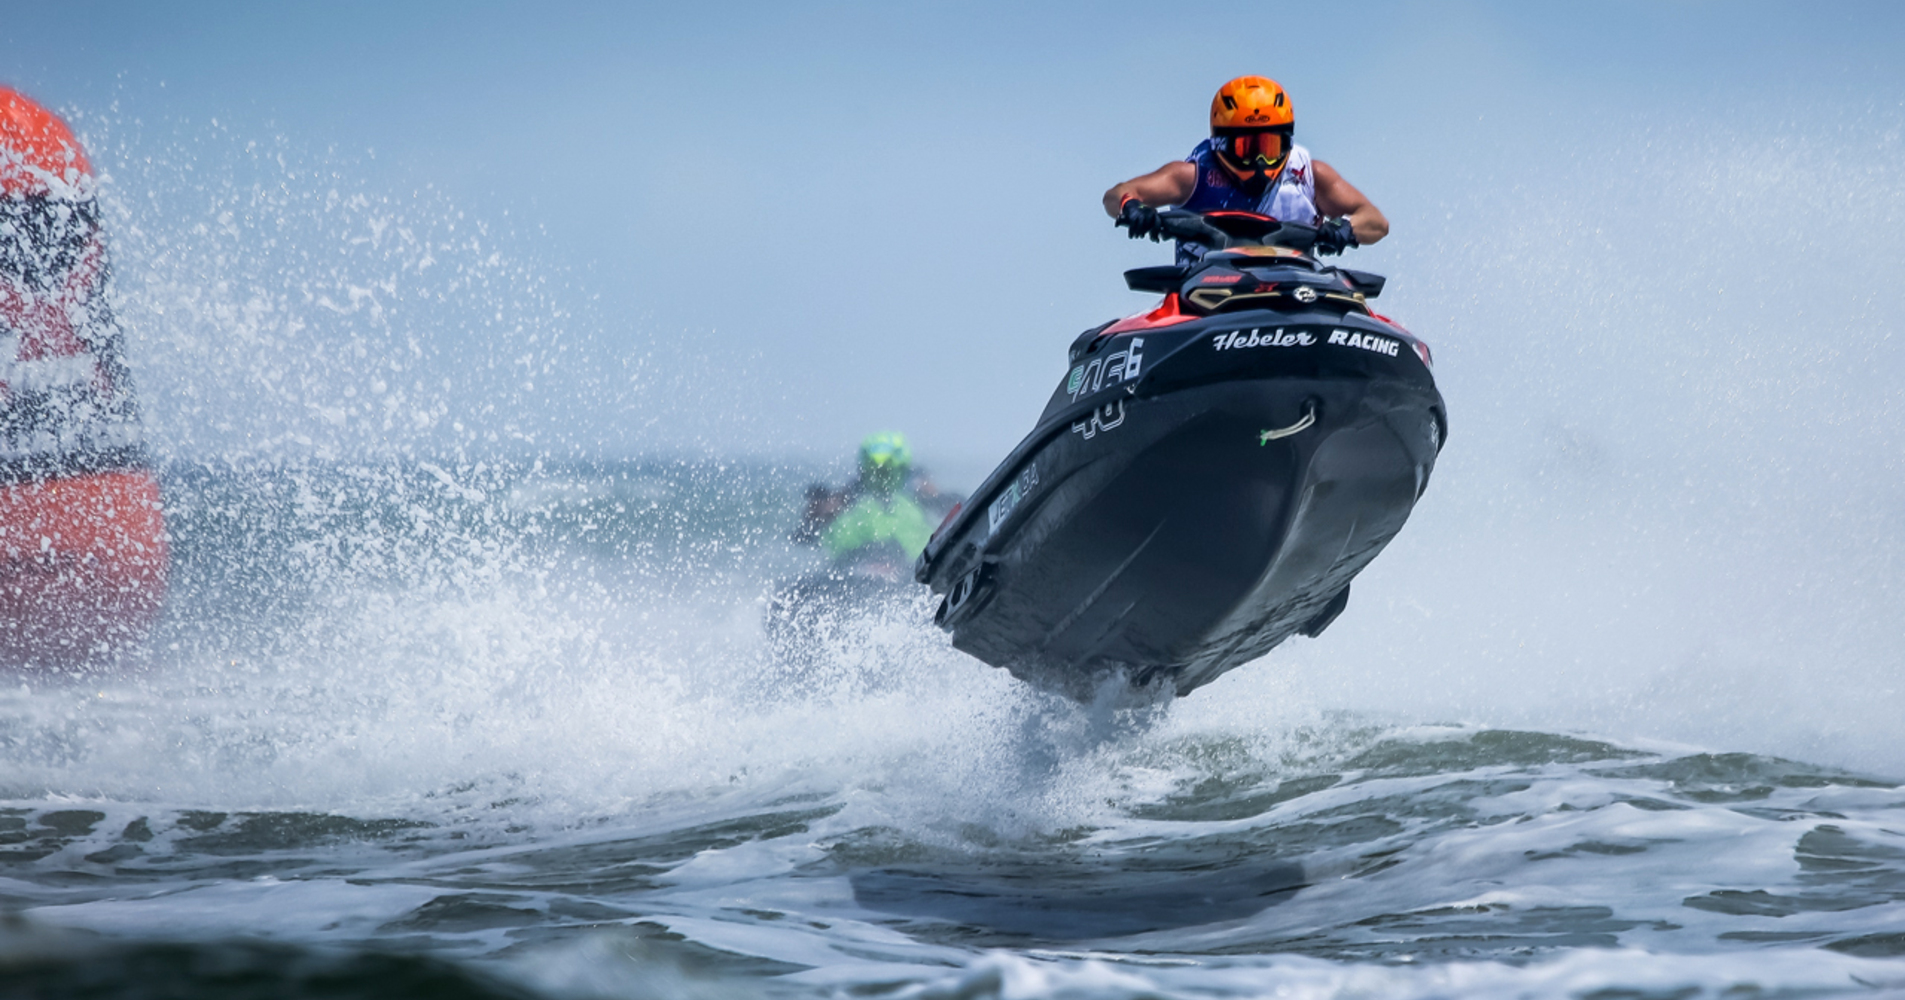 466	Todd Czarcinsku put in a solid ride on his Sea_Doo RXTX